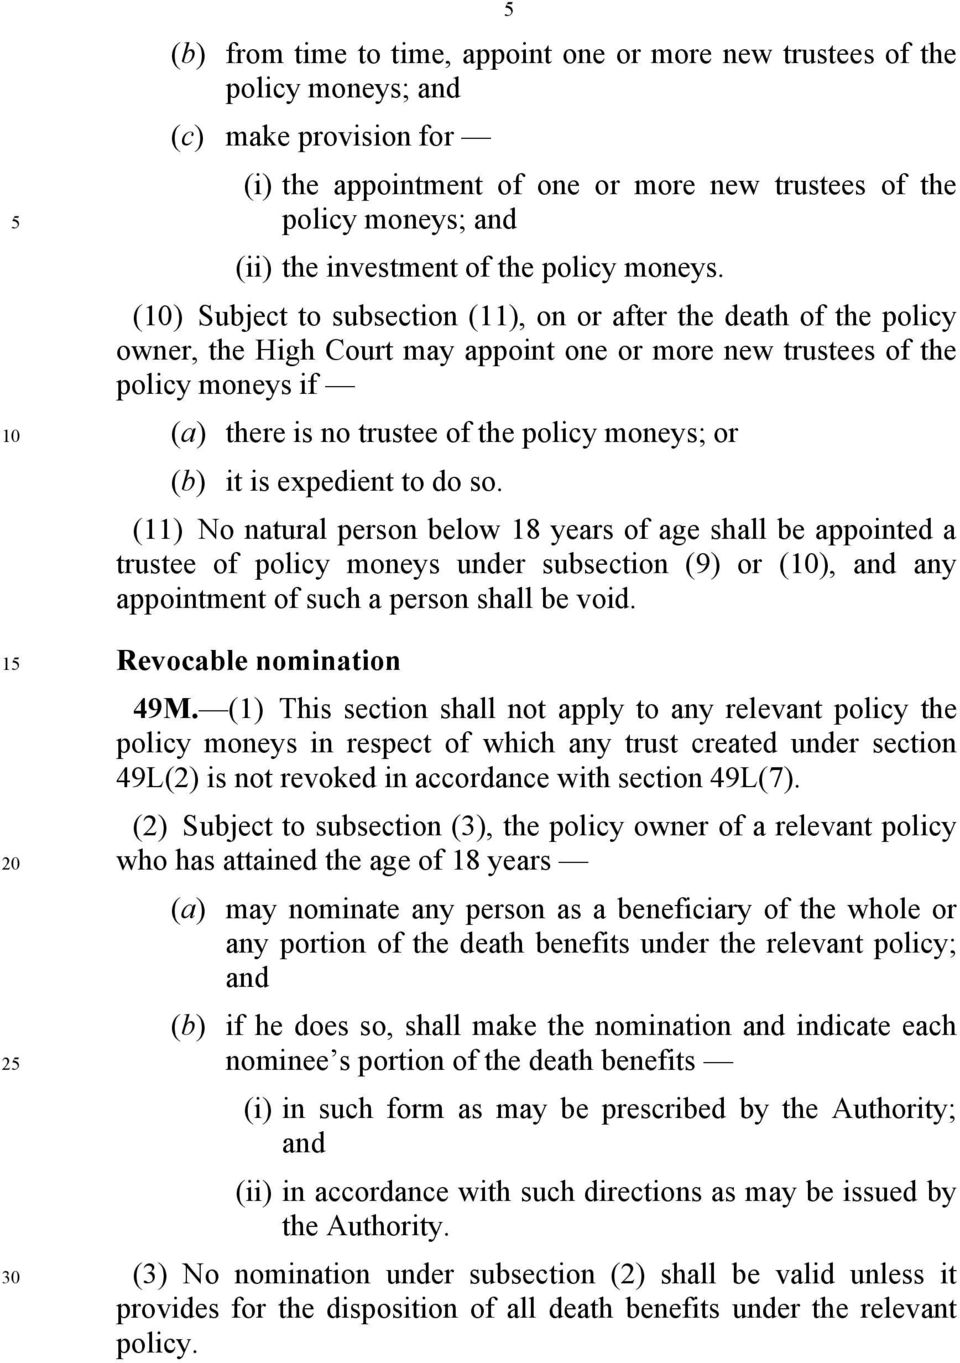 () Subject to subsection (11), on or after the death of the policy owner, the High Court may appoint one or more new trustees of the policy moneys if (a) there is no trustee of the policy moneys; or